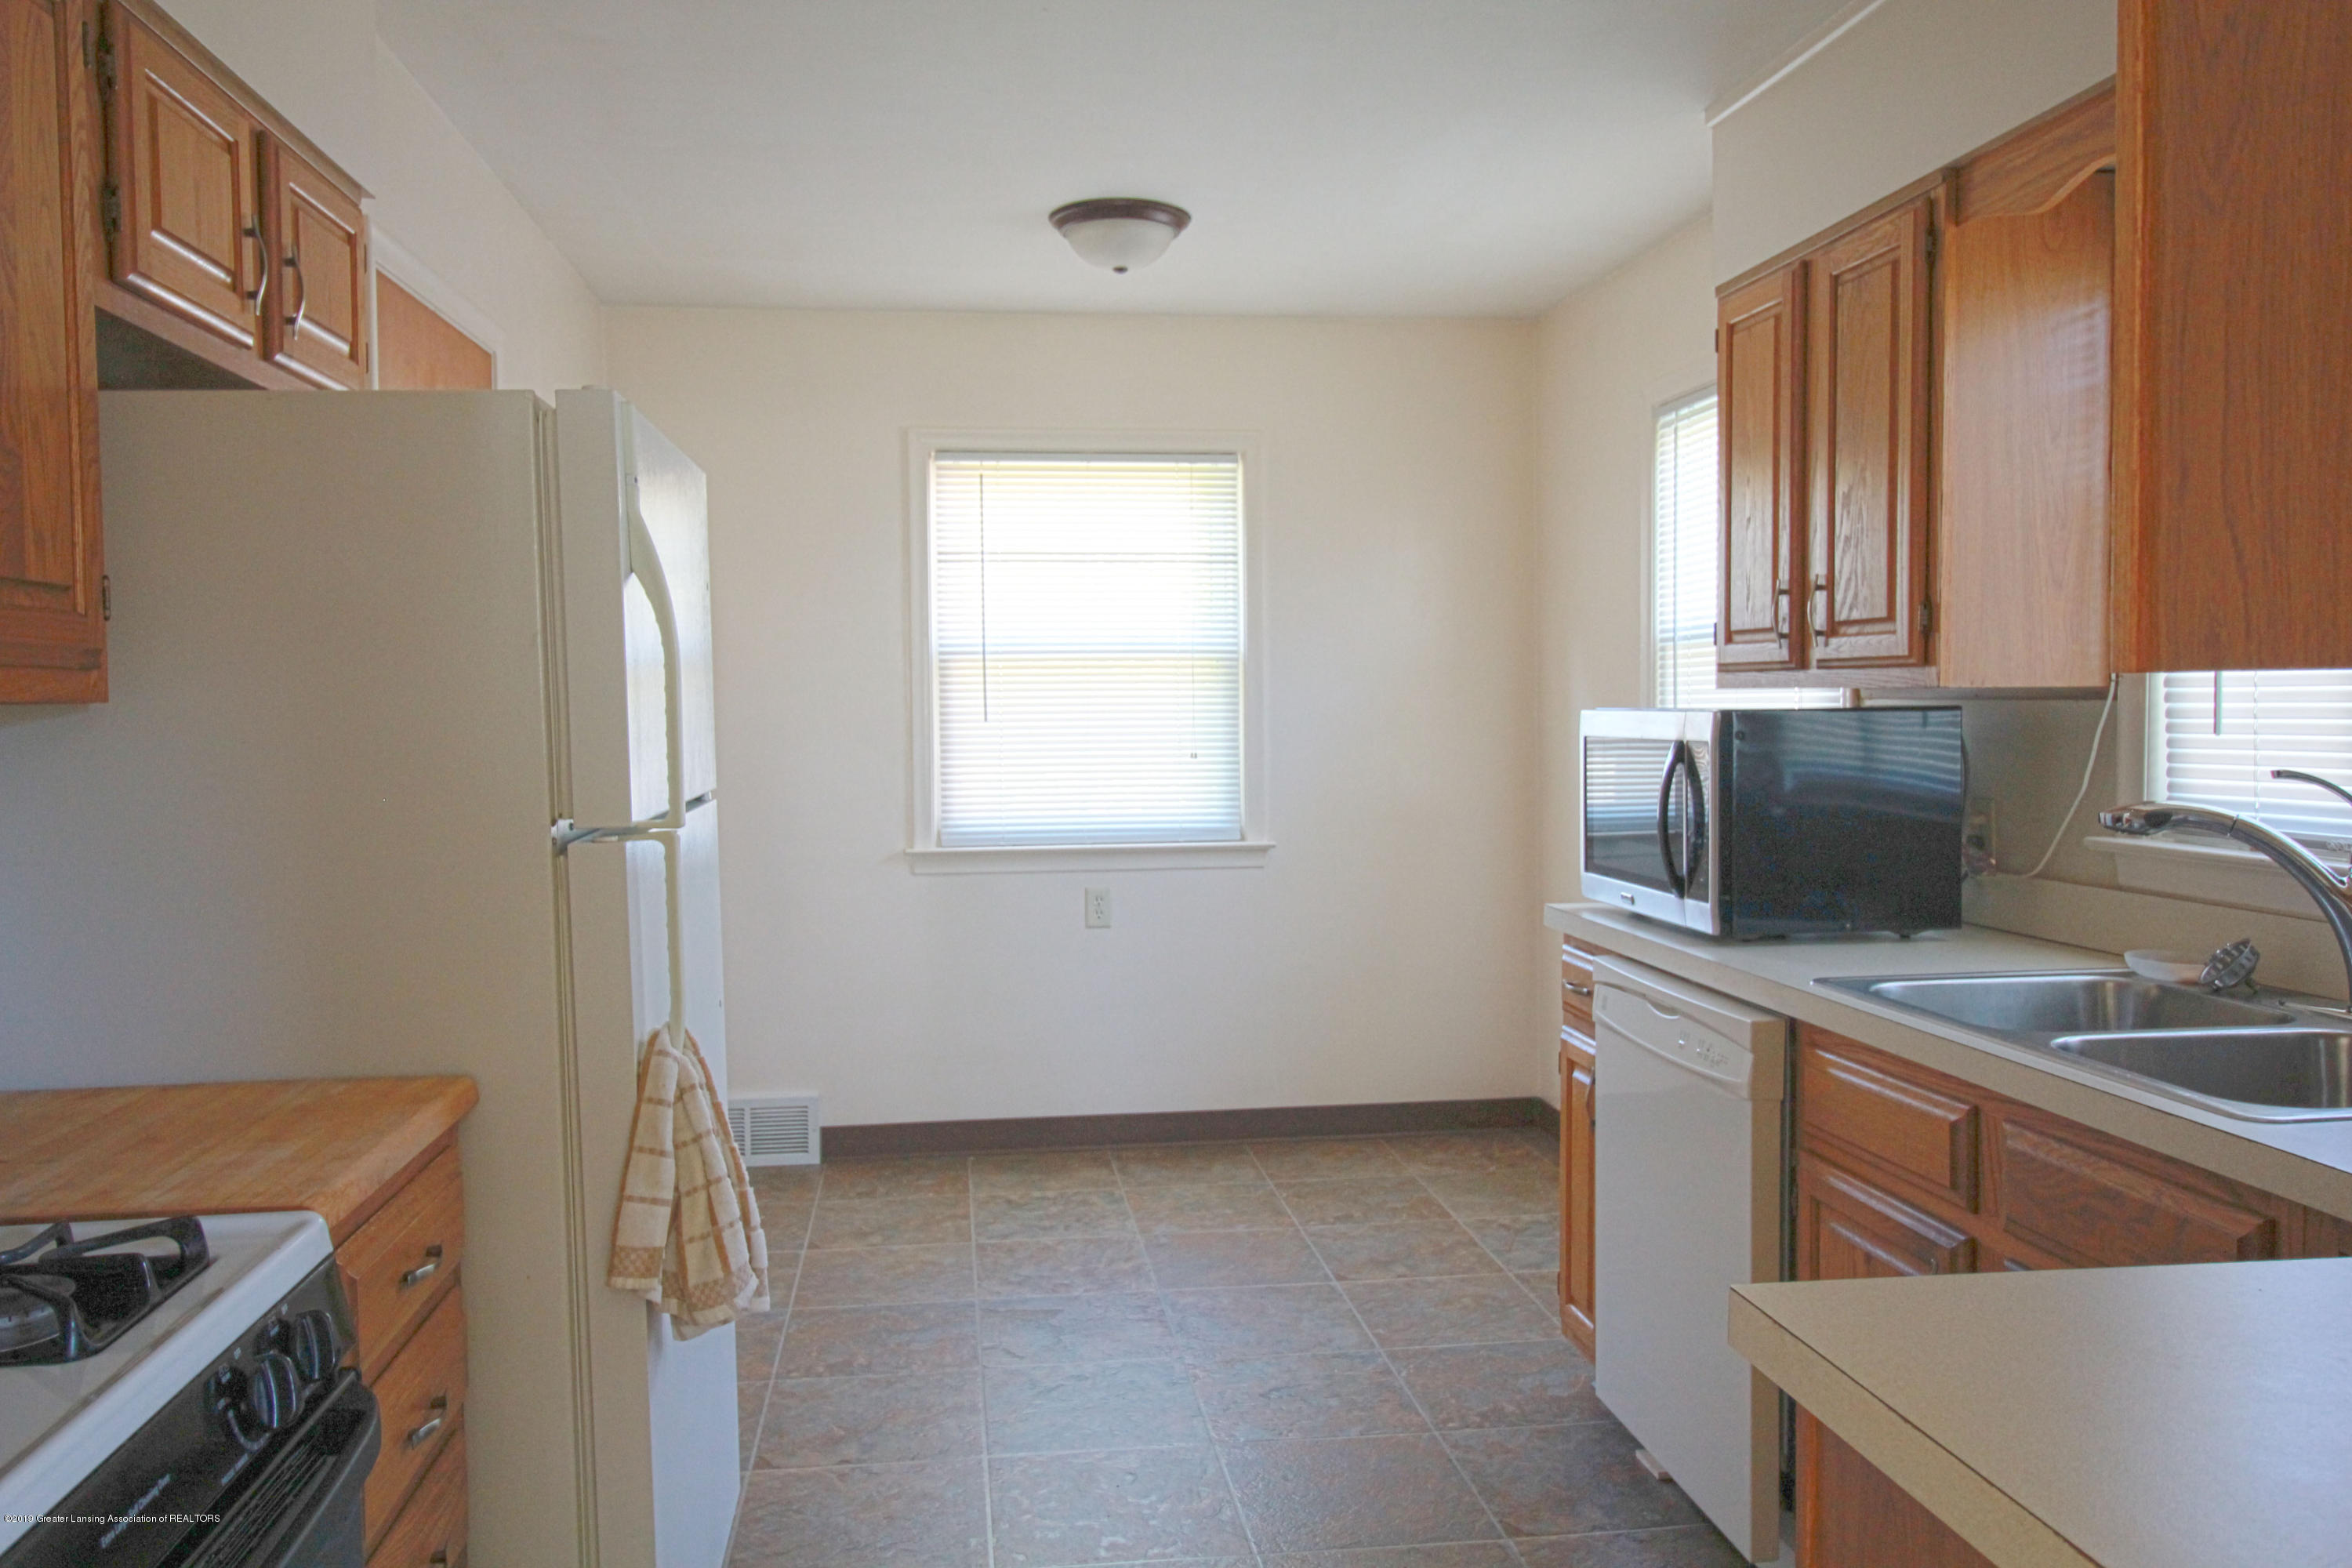 1113 N Foster Ave - kitchen 2 - 5